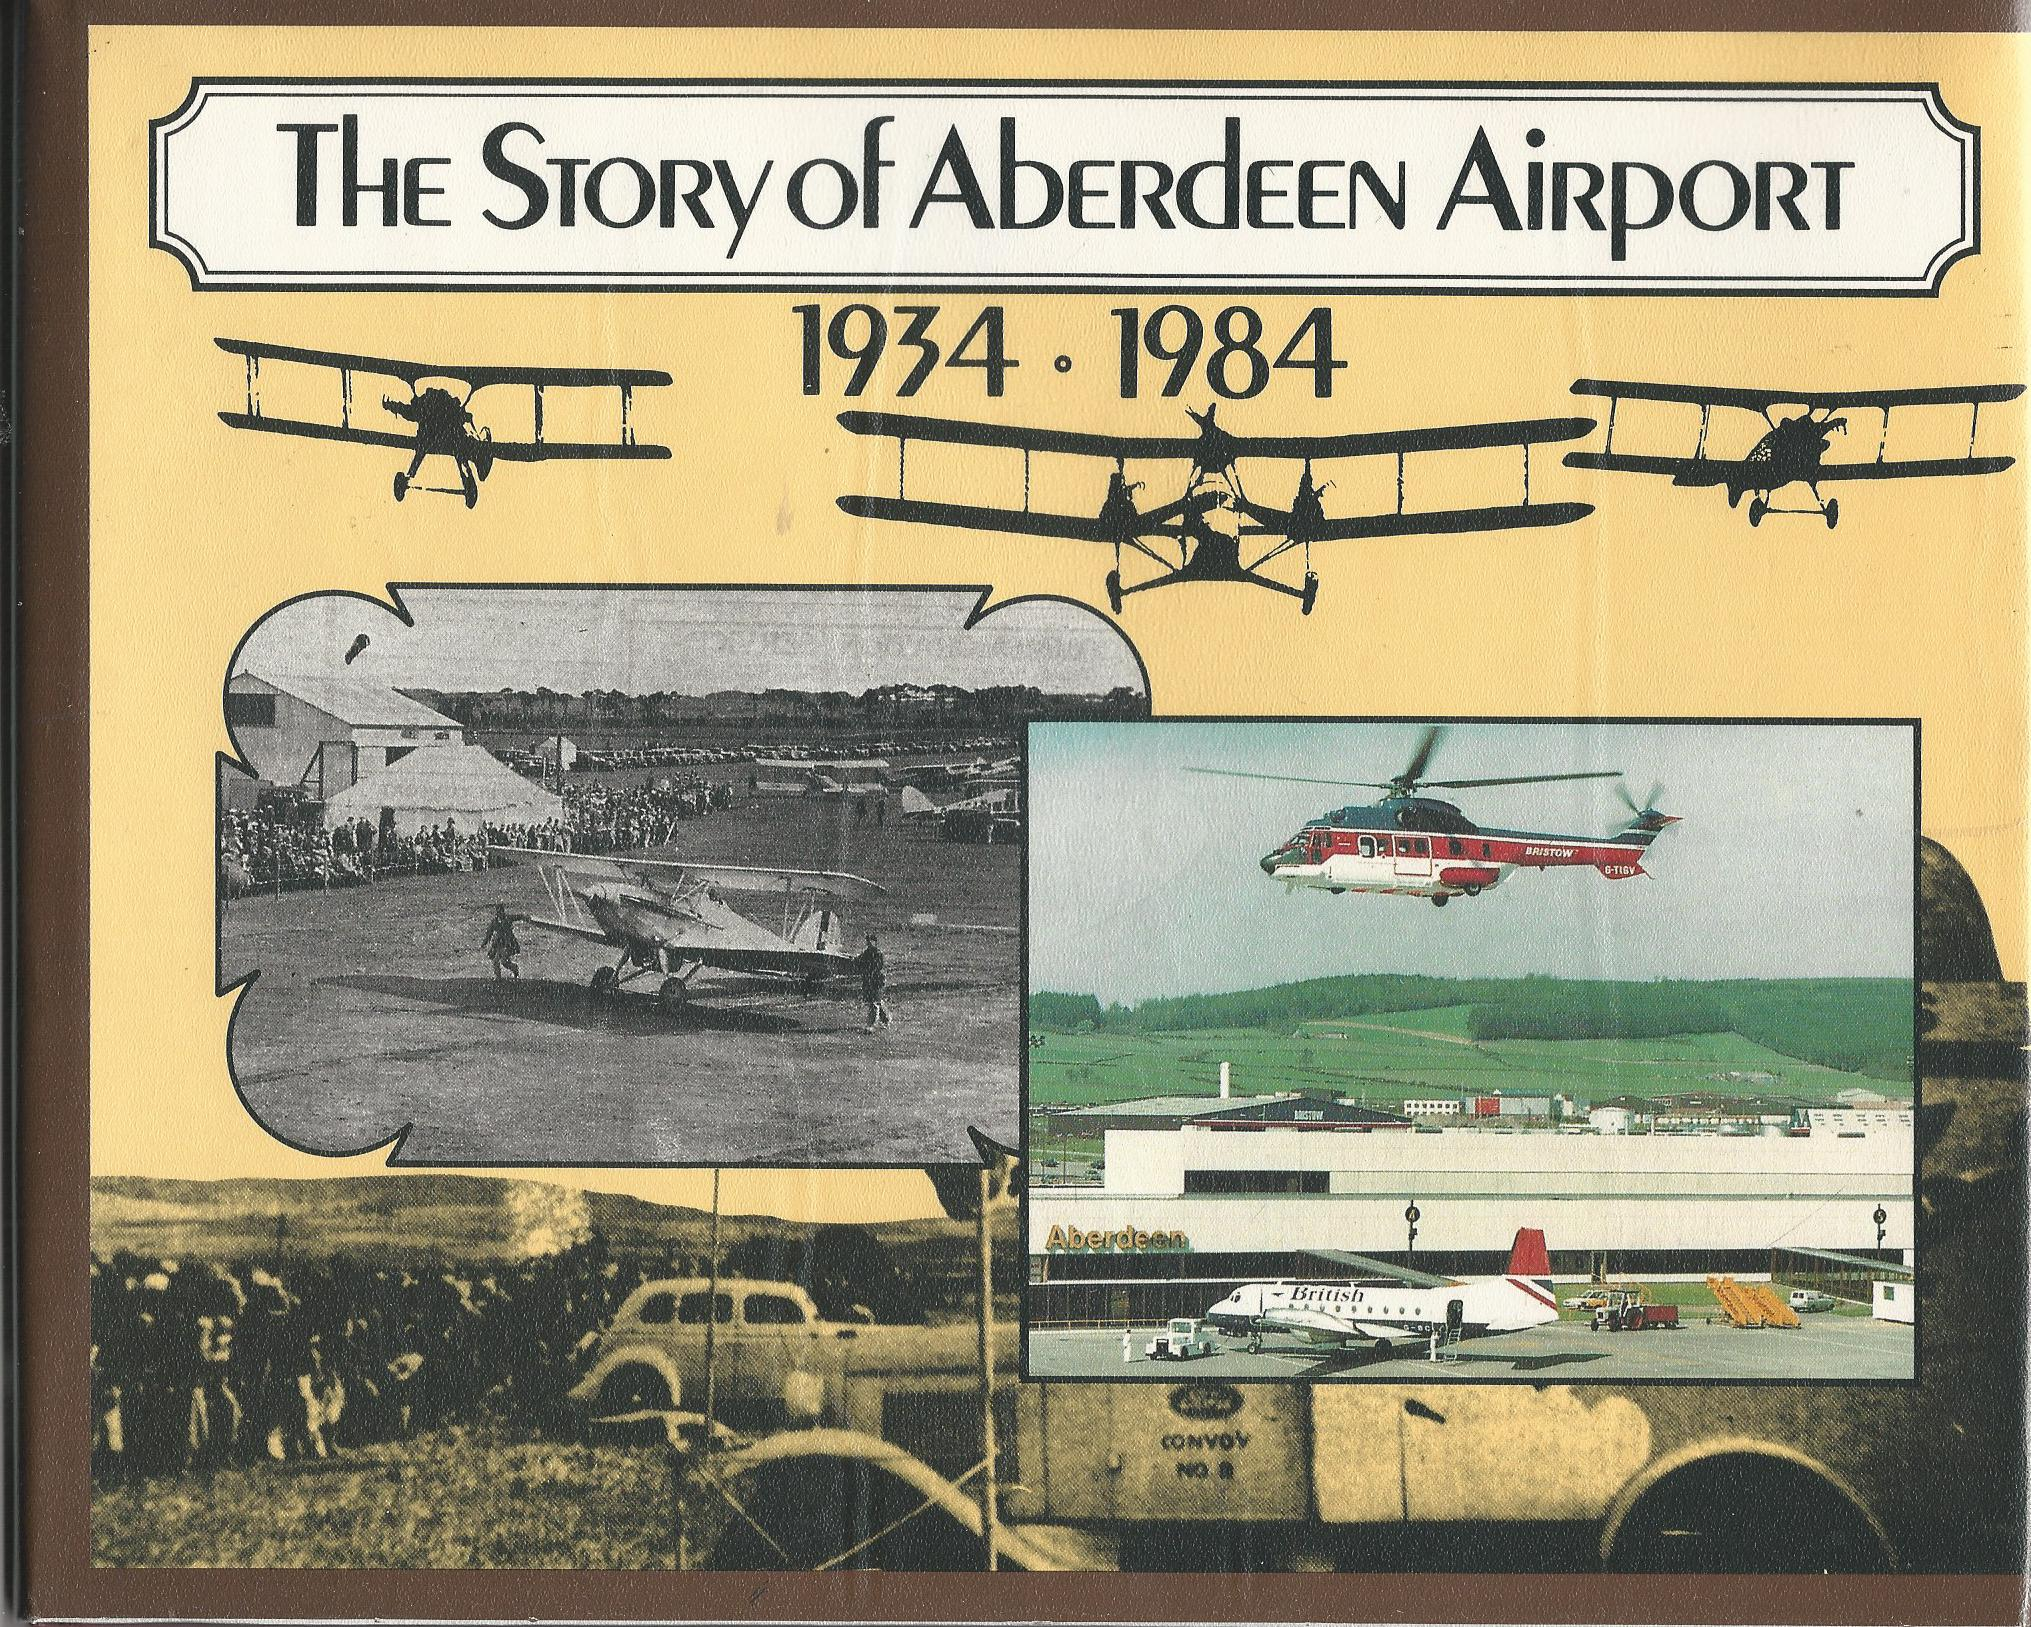 Image for The Story of Aberdeen Airport 1934-1984.